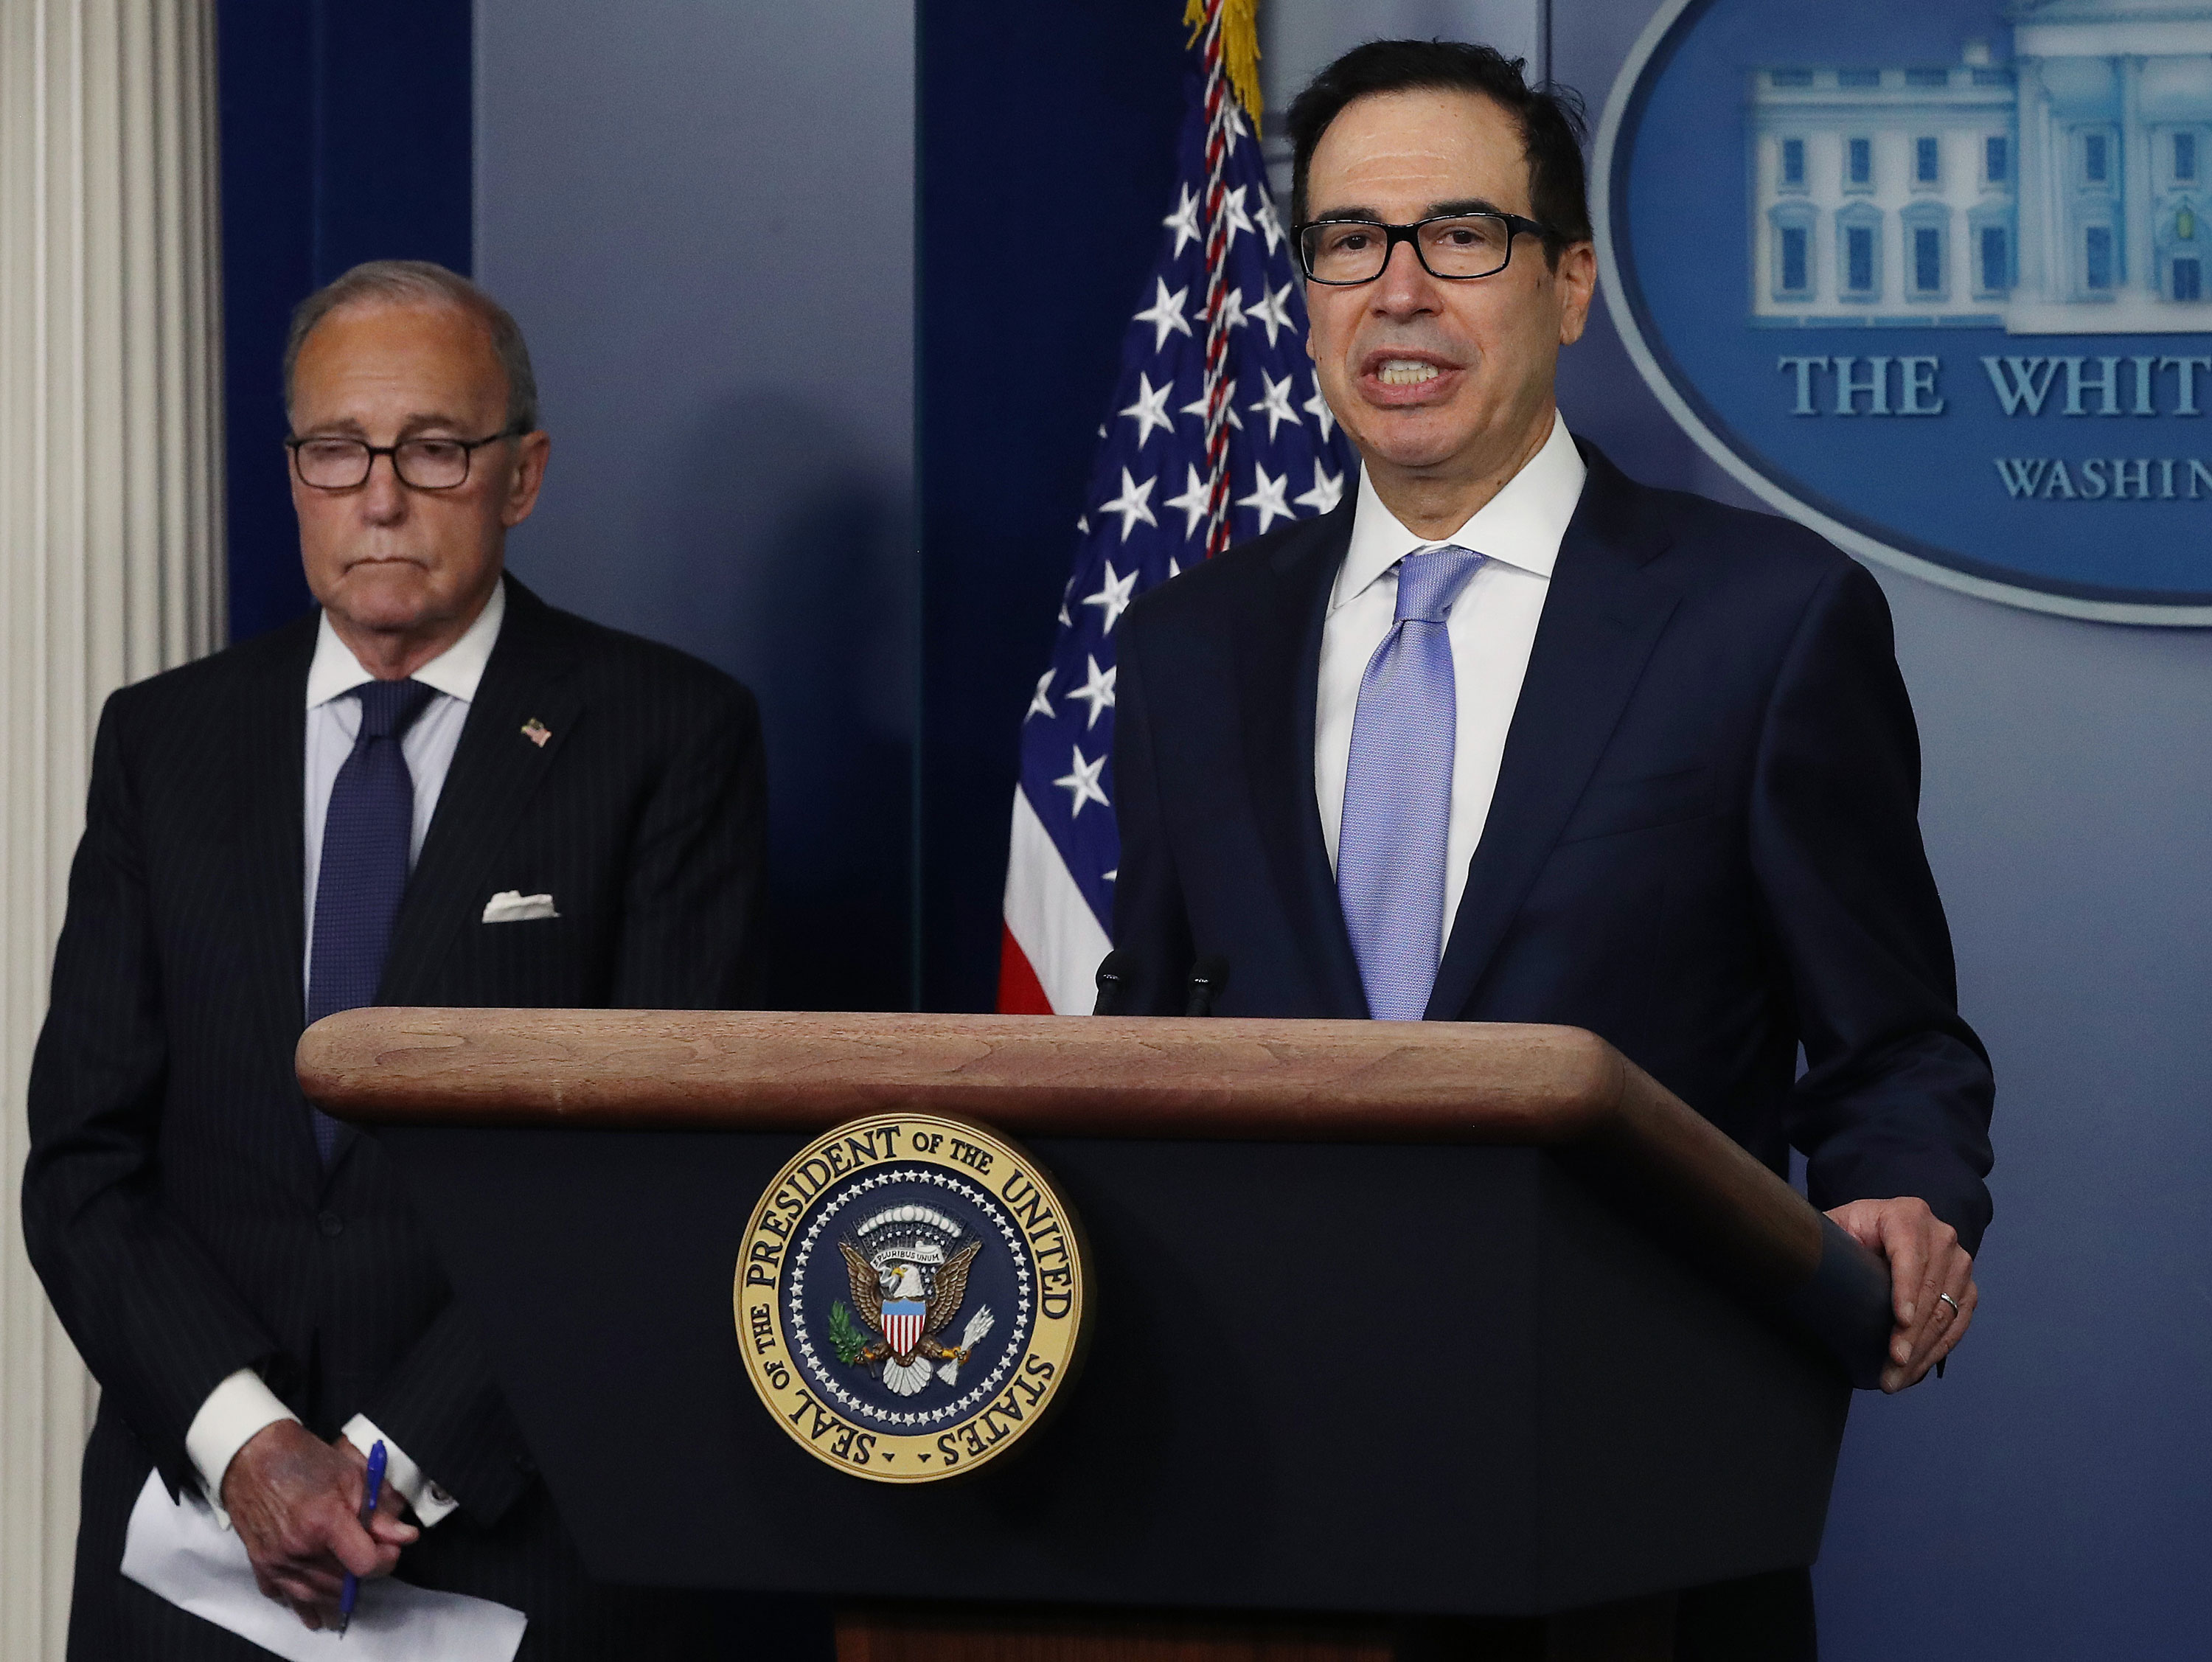 U.S. Treasury Secretary Steven Mnuchinspeaks to the media in the briefing room at the White House on July 2 in Washington, DC.